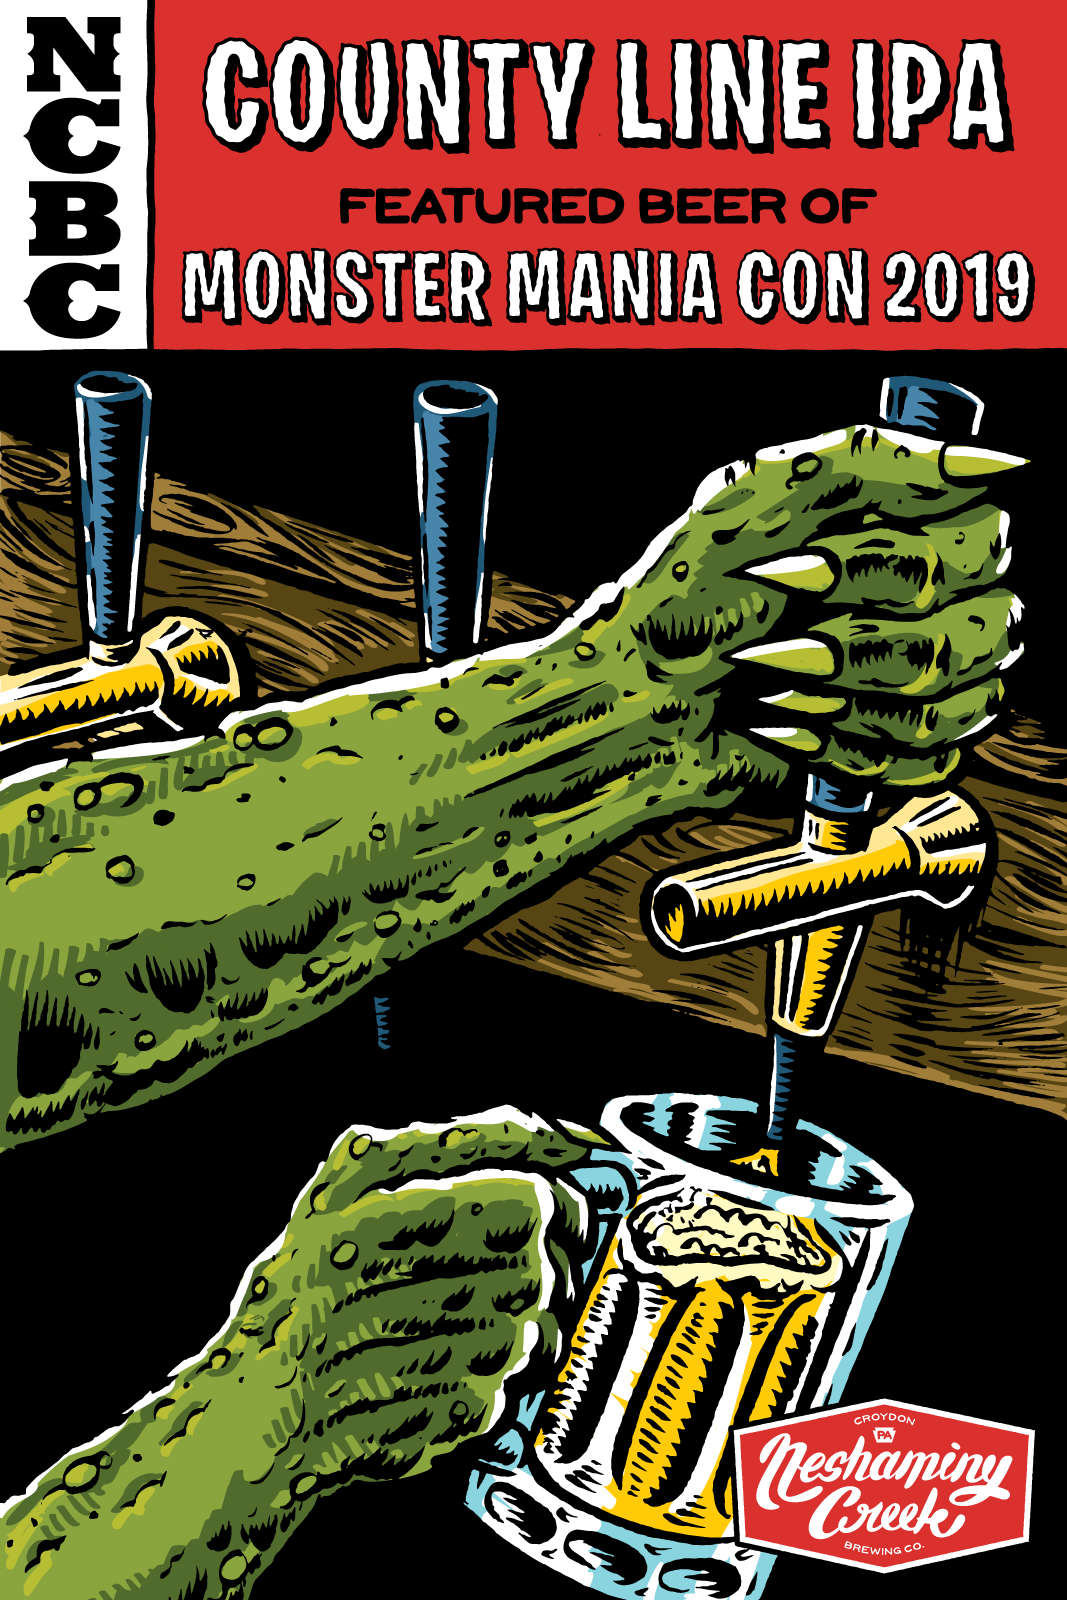 crowne-plaza-cherry-hill_ncbc-monster-con-2019-posters_02-26-19